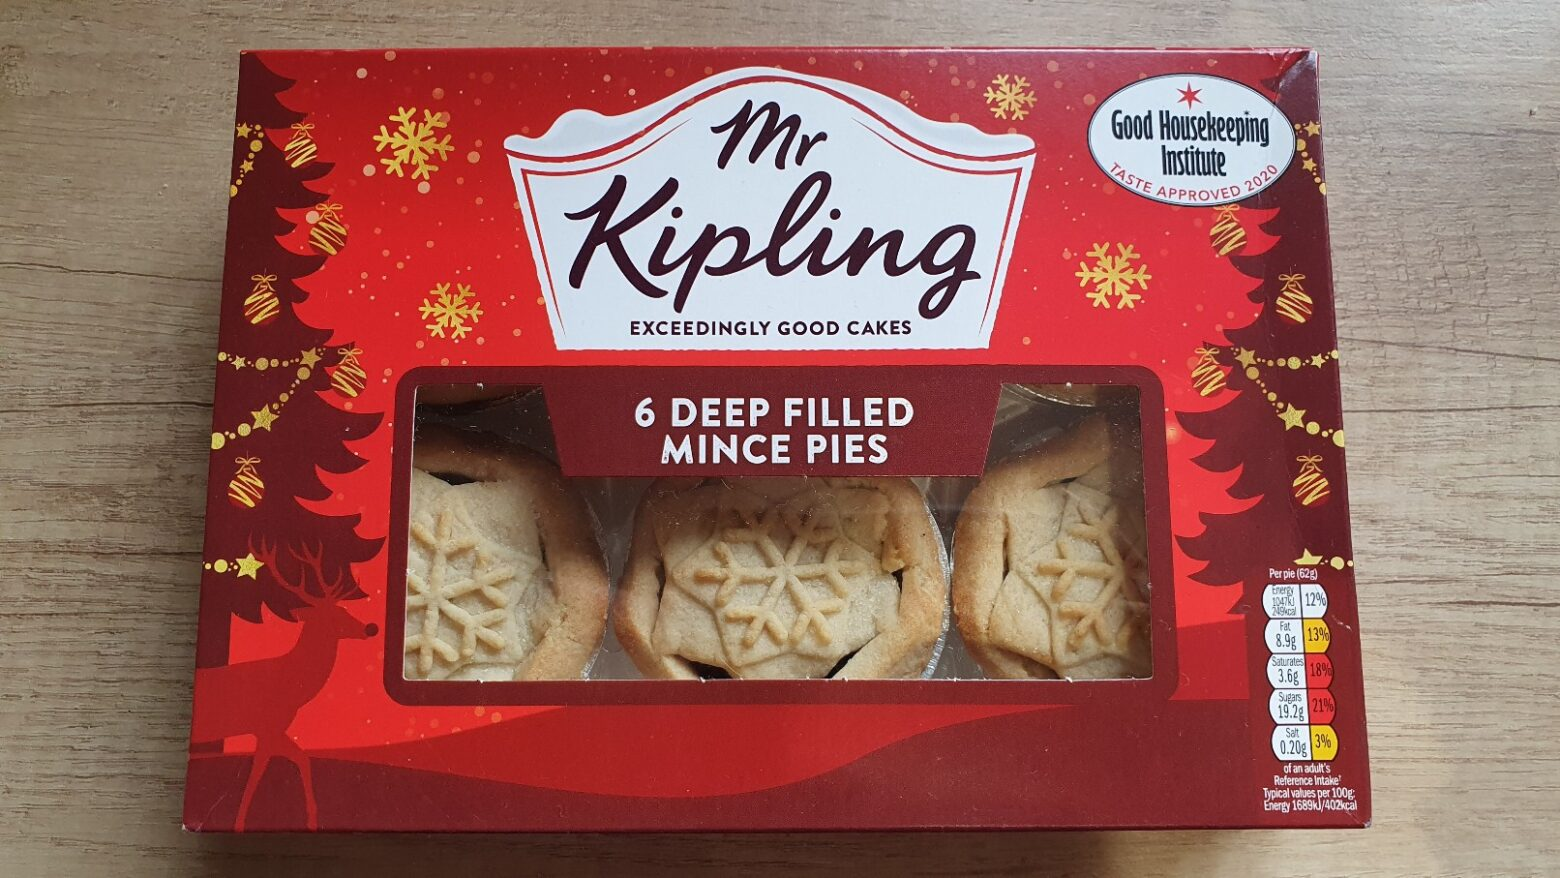 Mr Kipling Deep Filled Mince Pie Review 2020